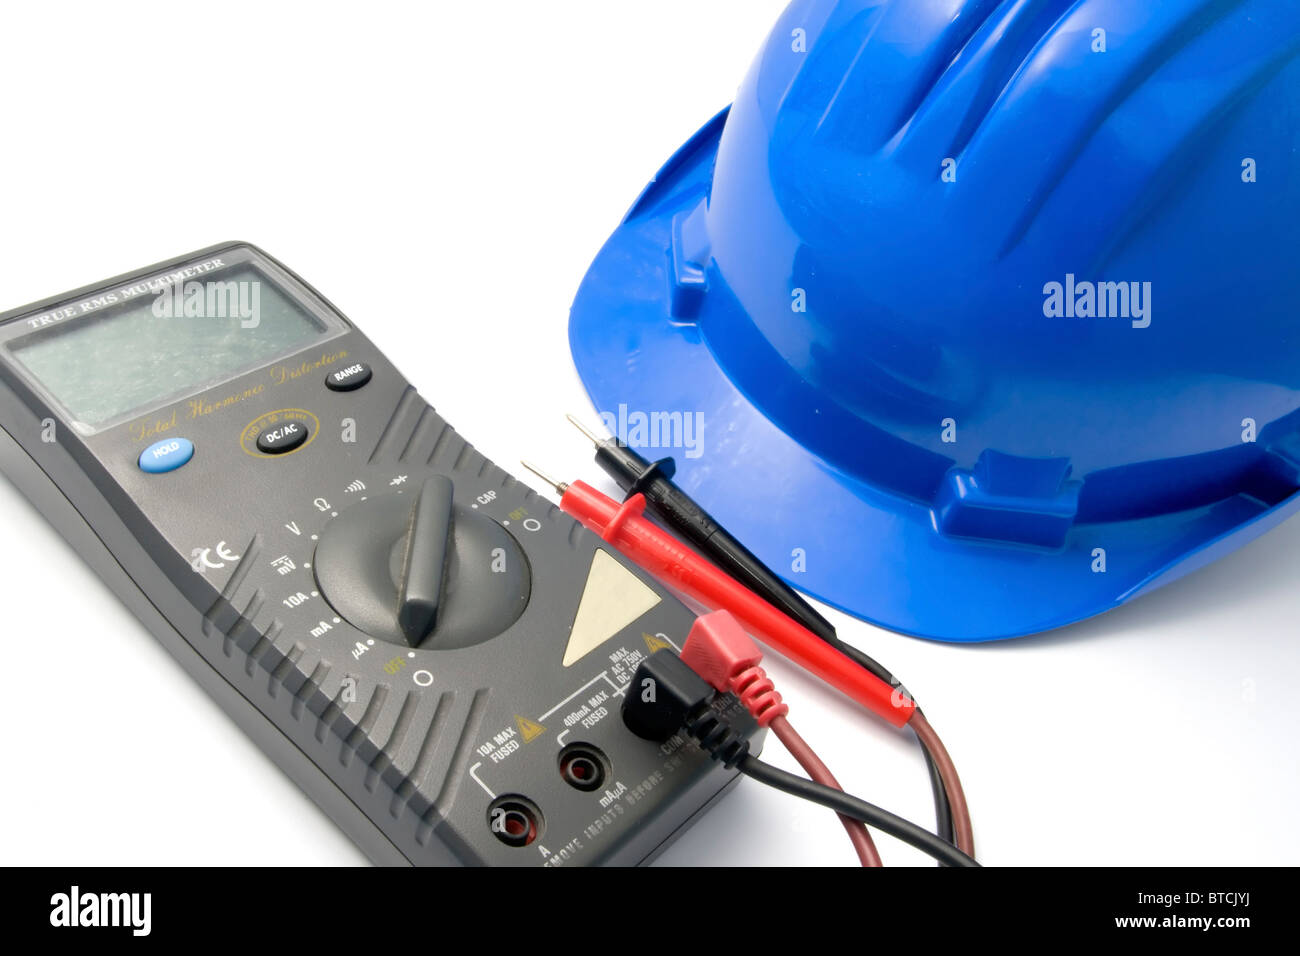 Isolated blue helmet and multimeter for workers - Stock Image